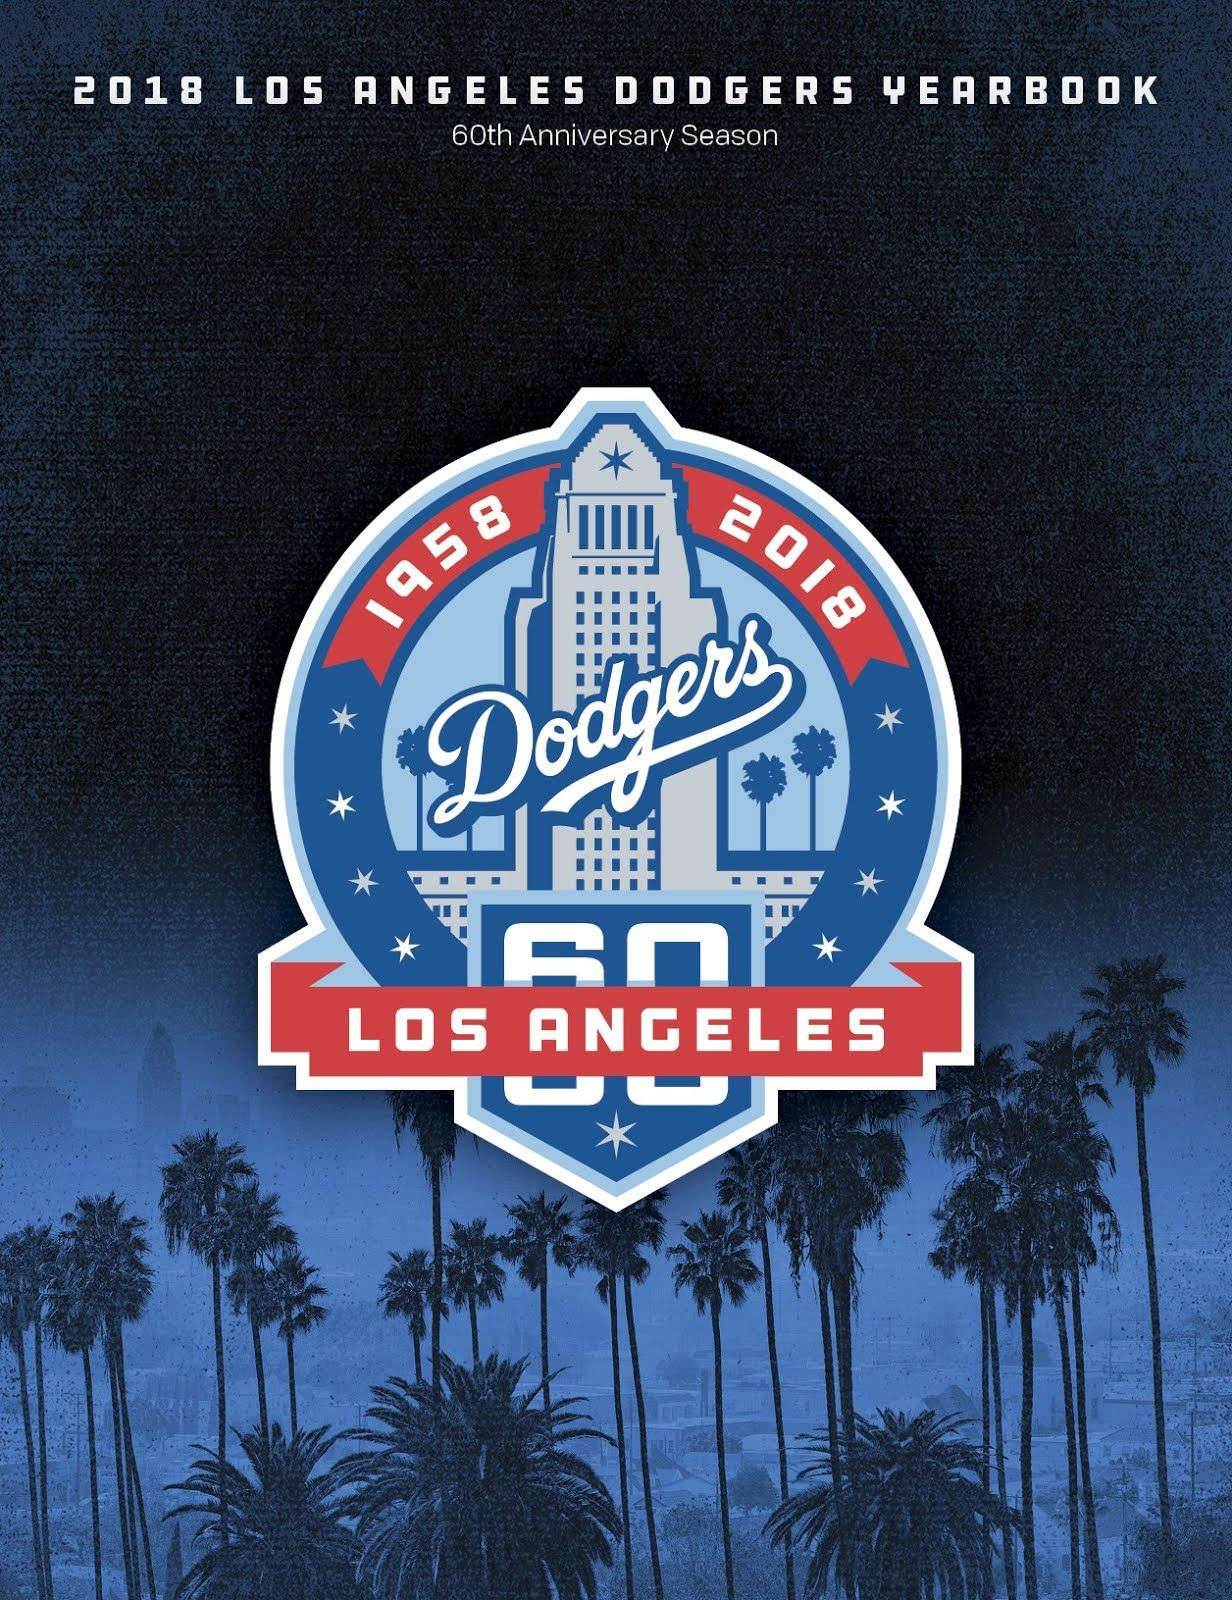 2018 Dodgers Yearbook Dodgers Los Angeles Dodgers Los Angeles